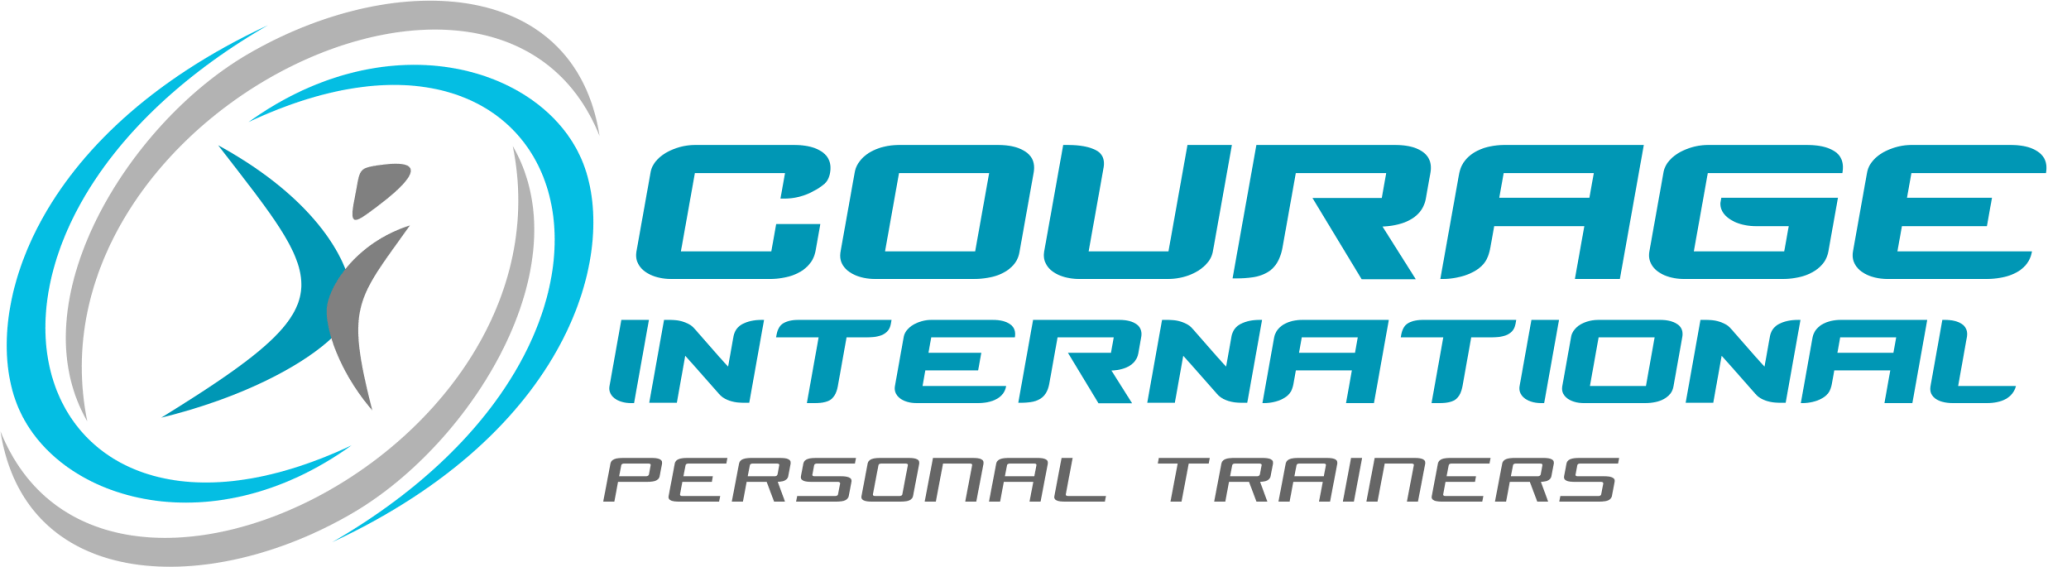 Courage International Personal Trainers